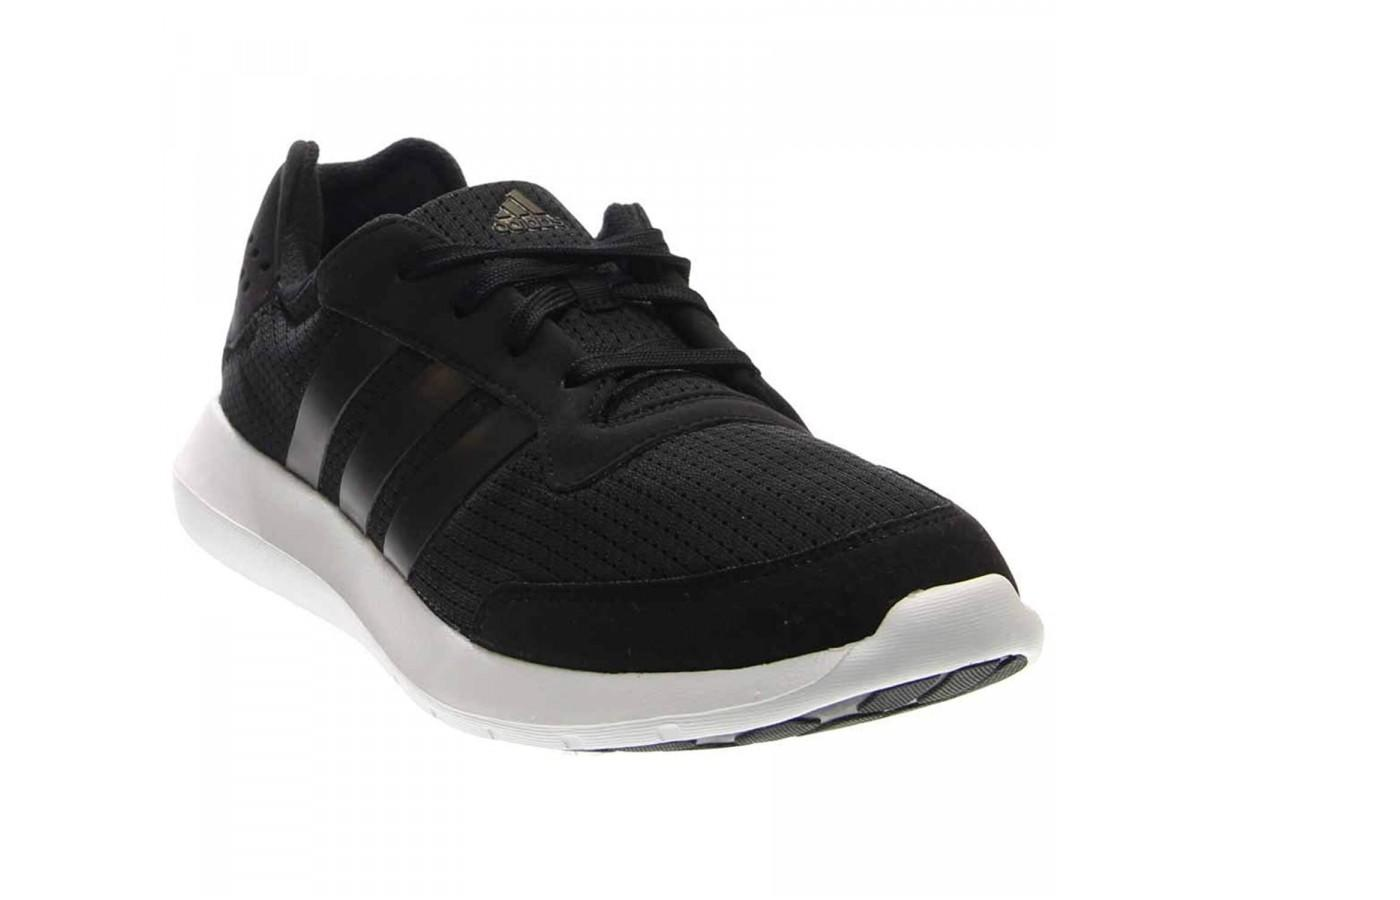 Adidas Element Athletic has an understated look about it